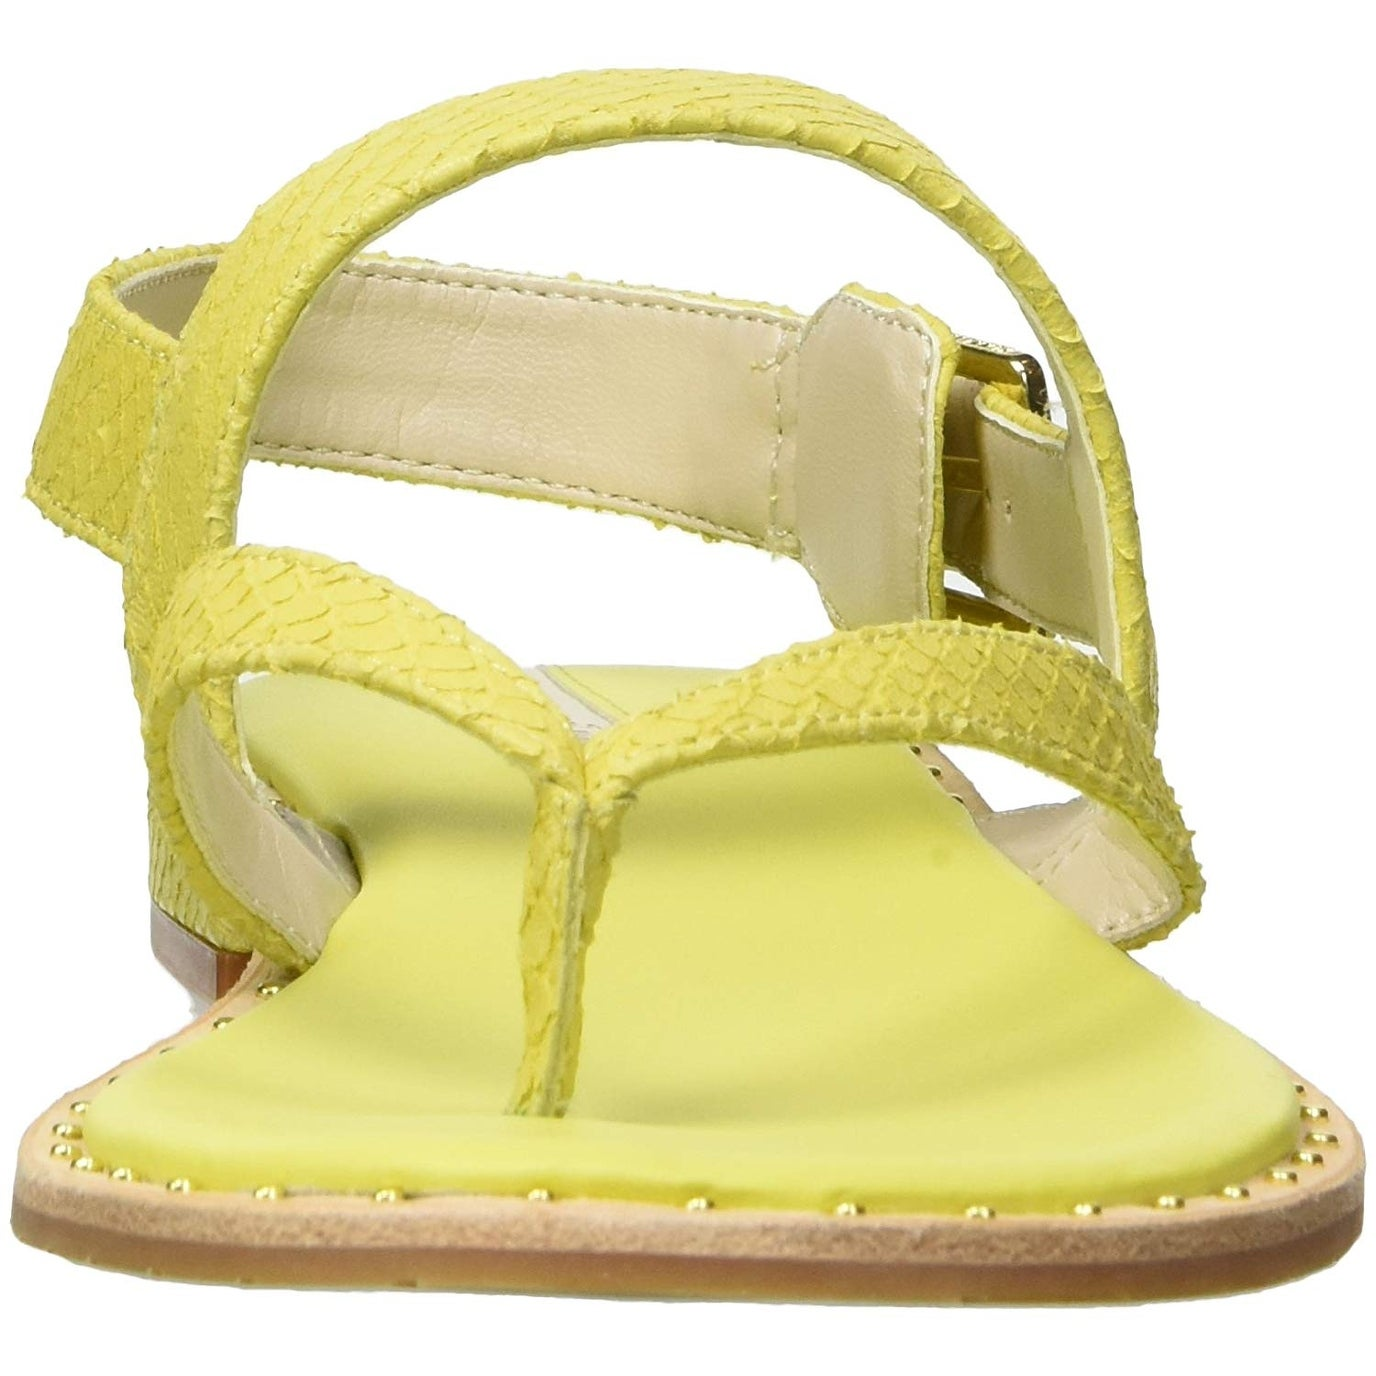 8f2340e96d5f Shop Kenneth Cole New York Women s Tama Thong Backstrap Flat Sandal - 8 -  Free Shipping Today - Overstock - 27567699